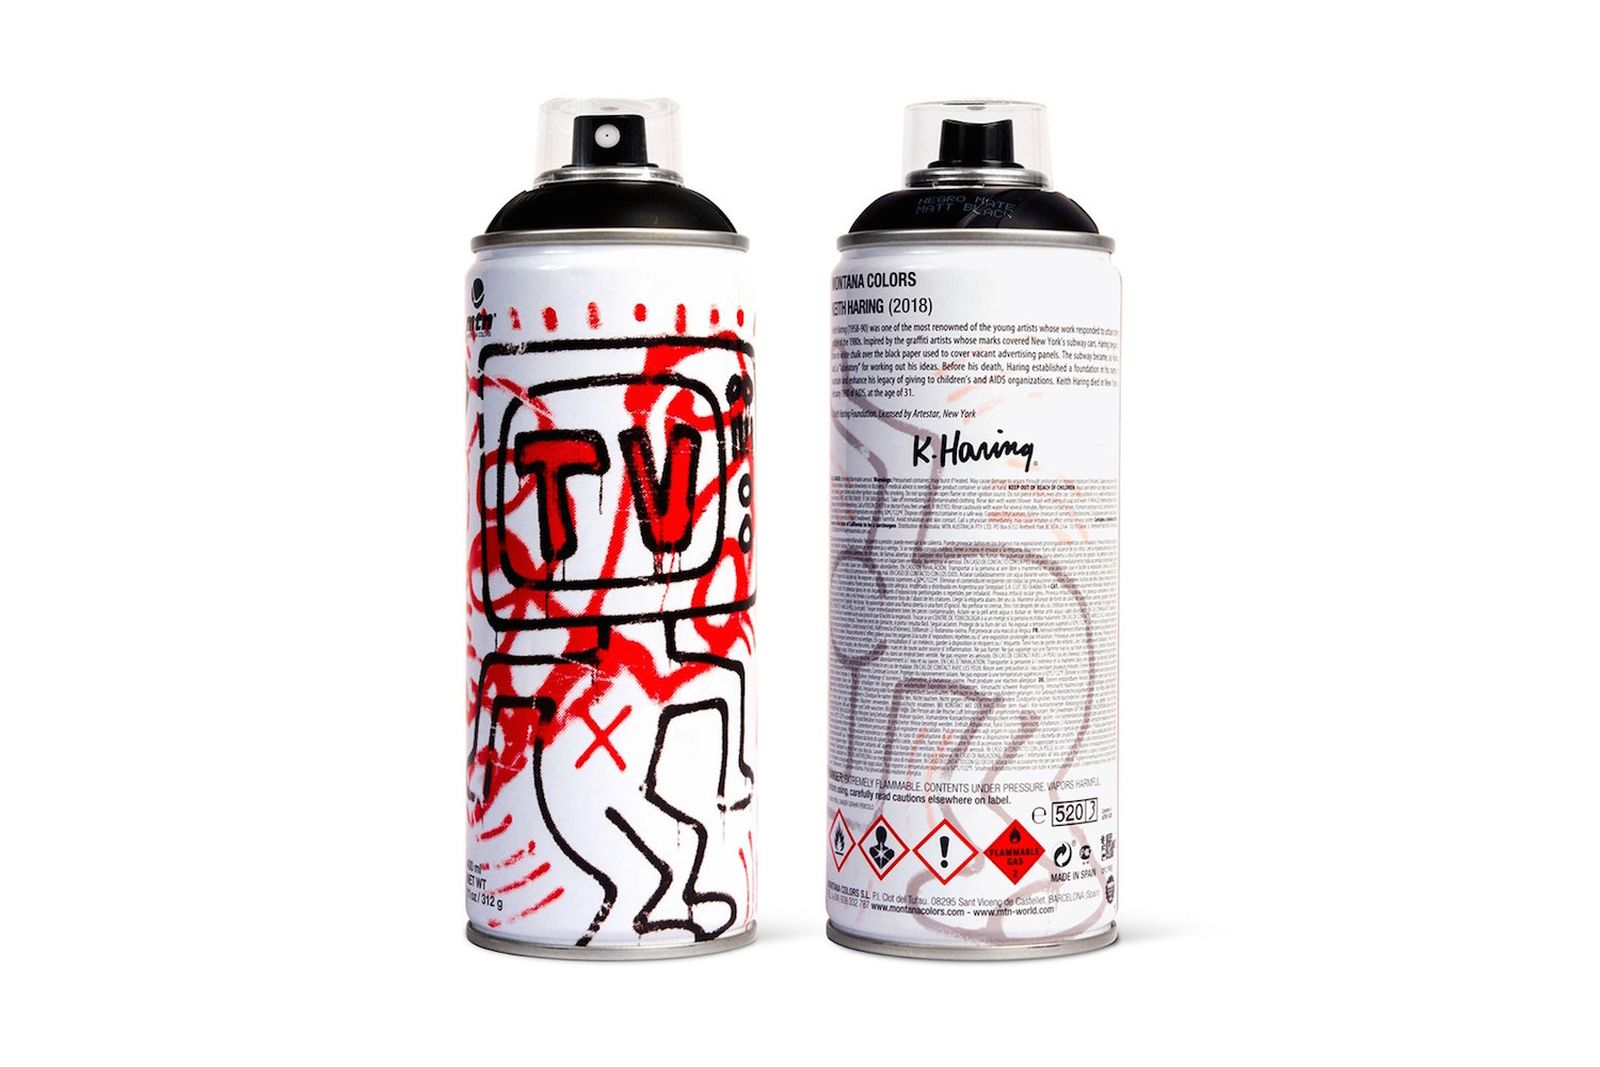 jean-michel-basquiat-keith-haring-spray-paint-cans-03